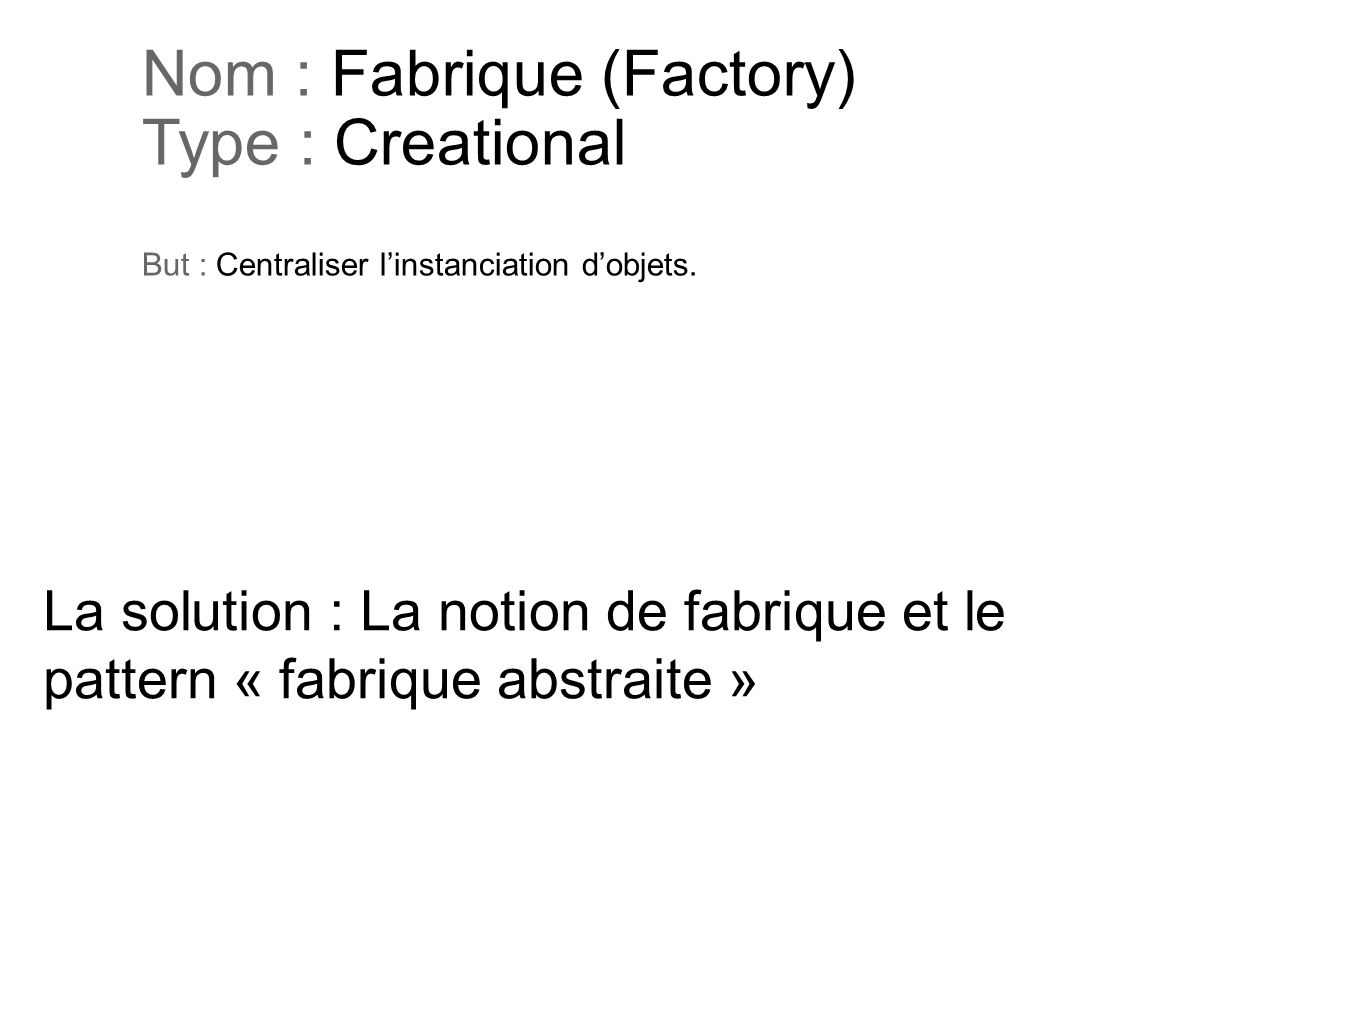 Nom : Fabrique (Factory) Type : Creational But : Centraliser l'instanciation d'objets.